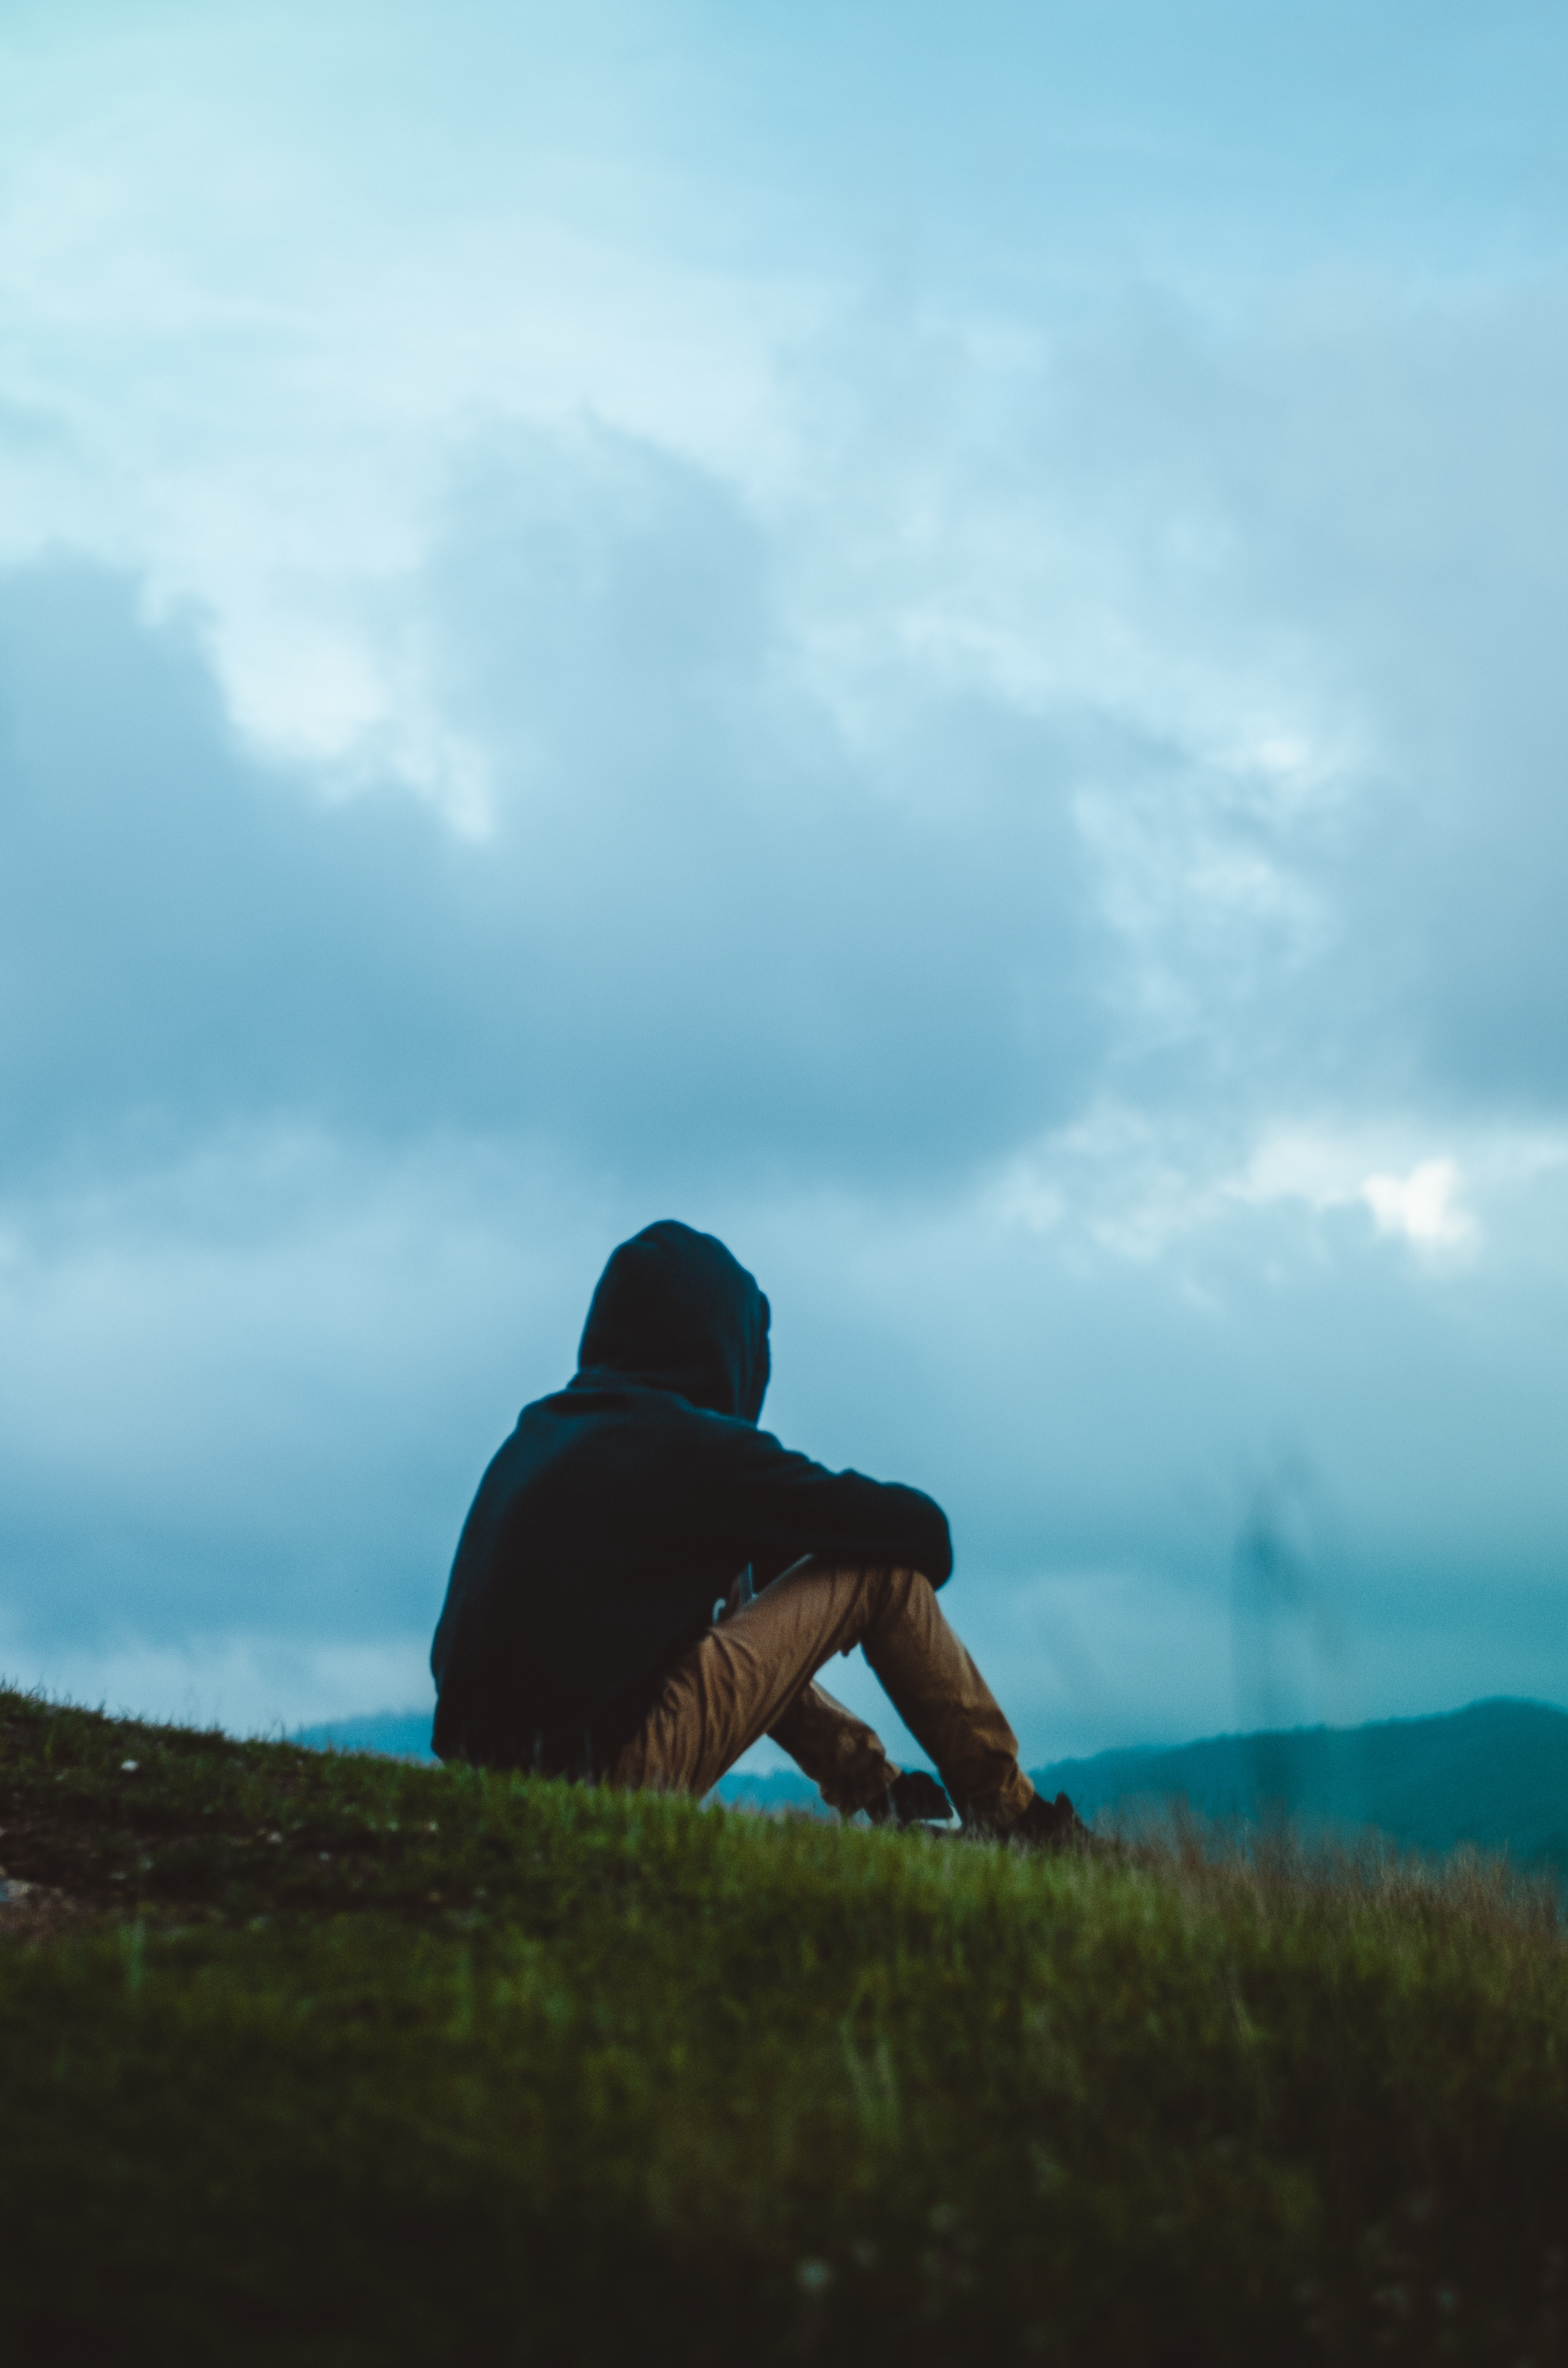 79848 Screensavers and Wallpapers Human for phone. Download Sky, Clouds, Miscellanea, Miscellaneous, Field, Human, Person, Loneliness, Hood pictures for free